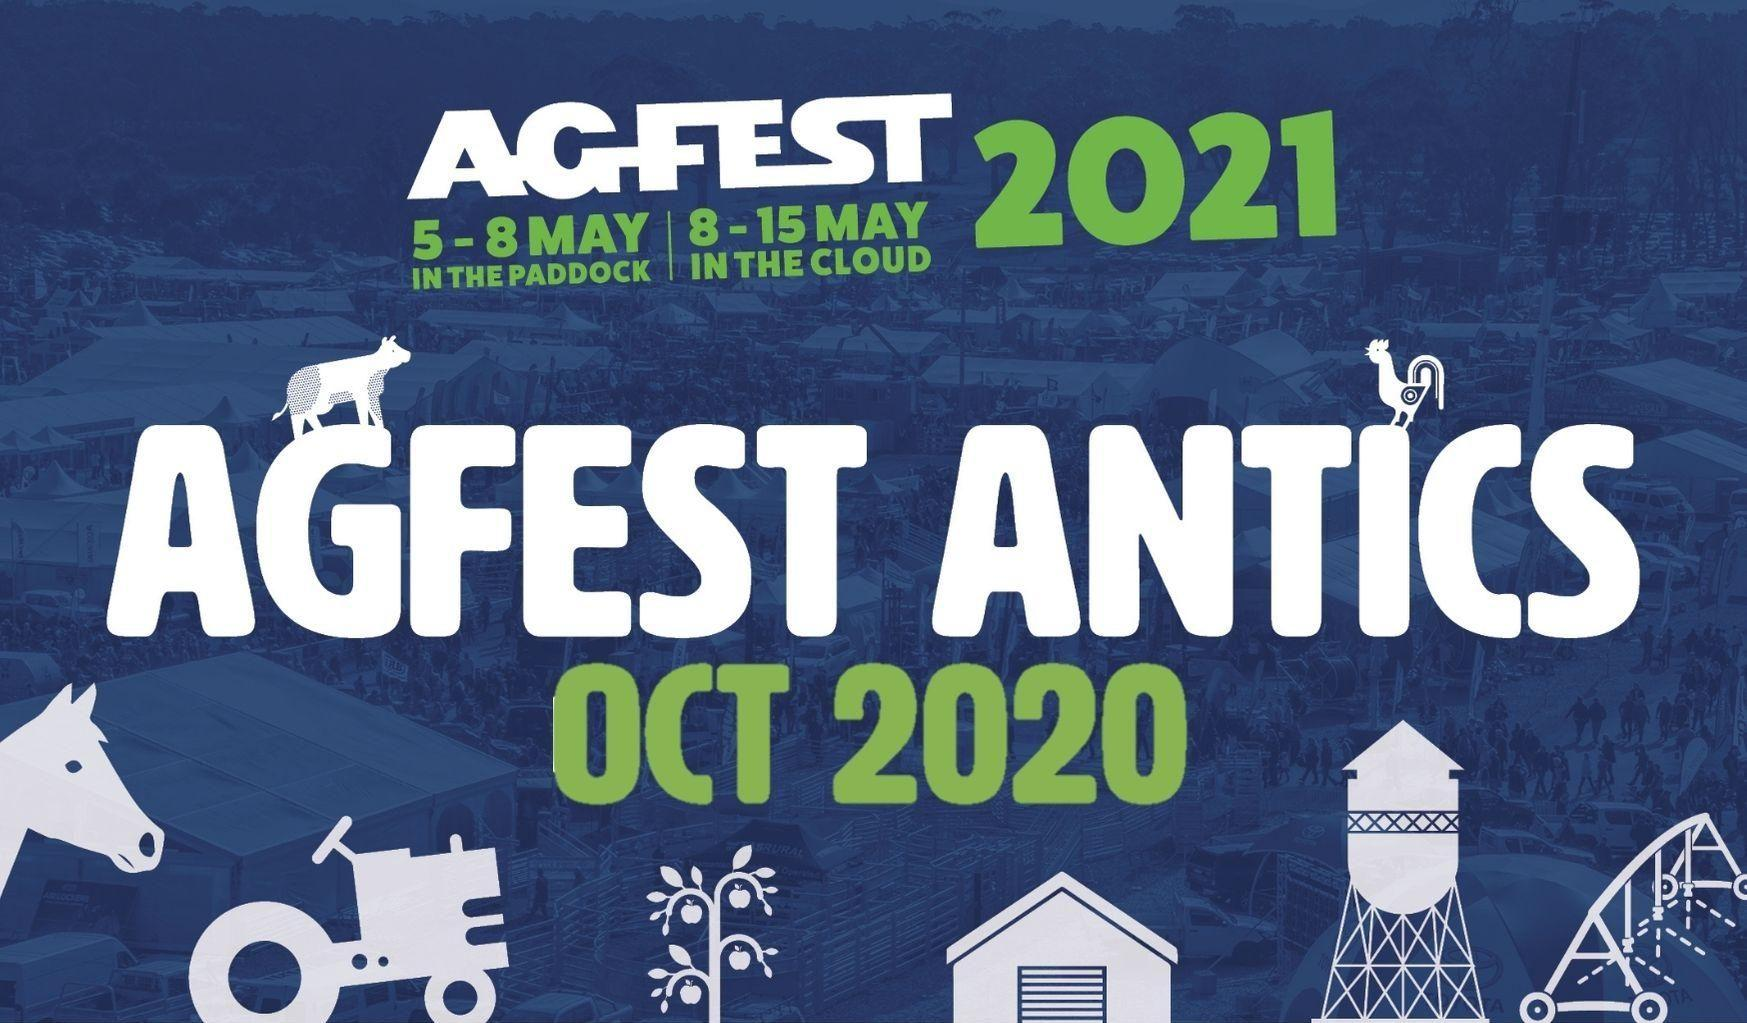 Agfest Antics - October 2020